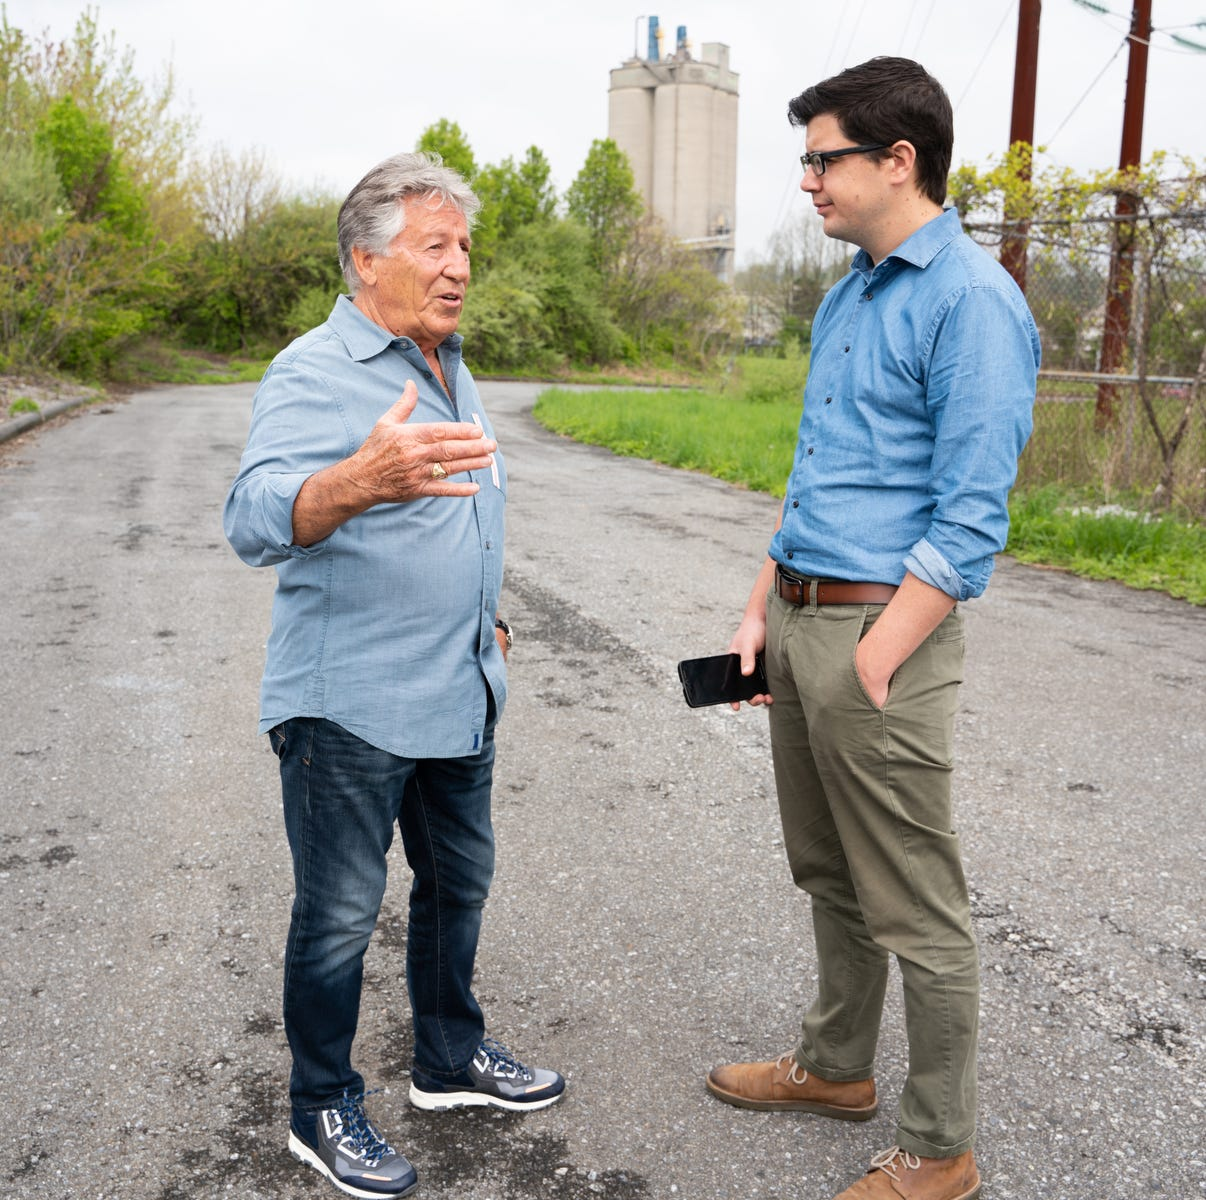 Trip to Nazareth Speedway with Mario Andretti: No more smiles here